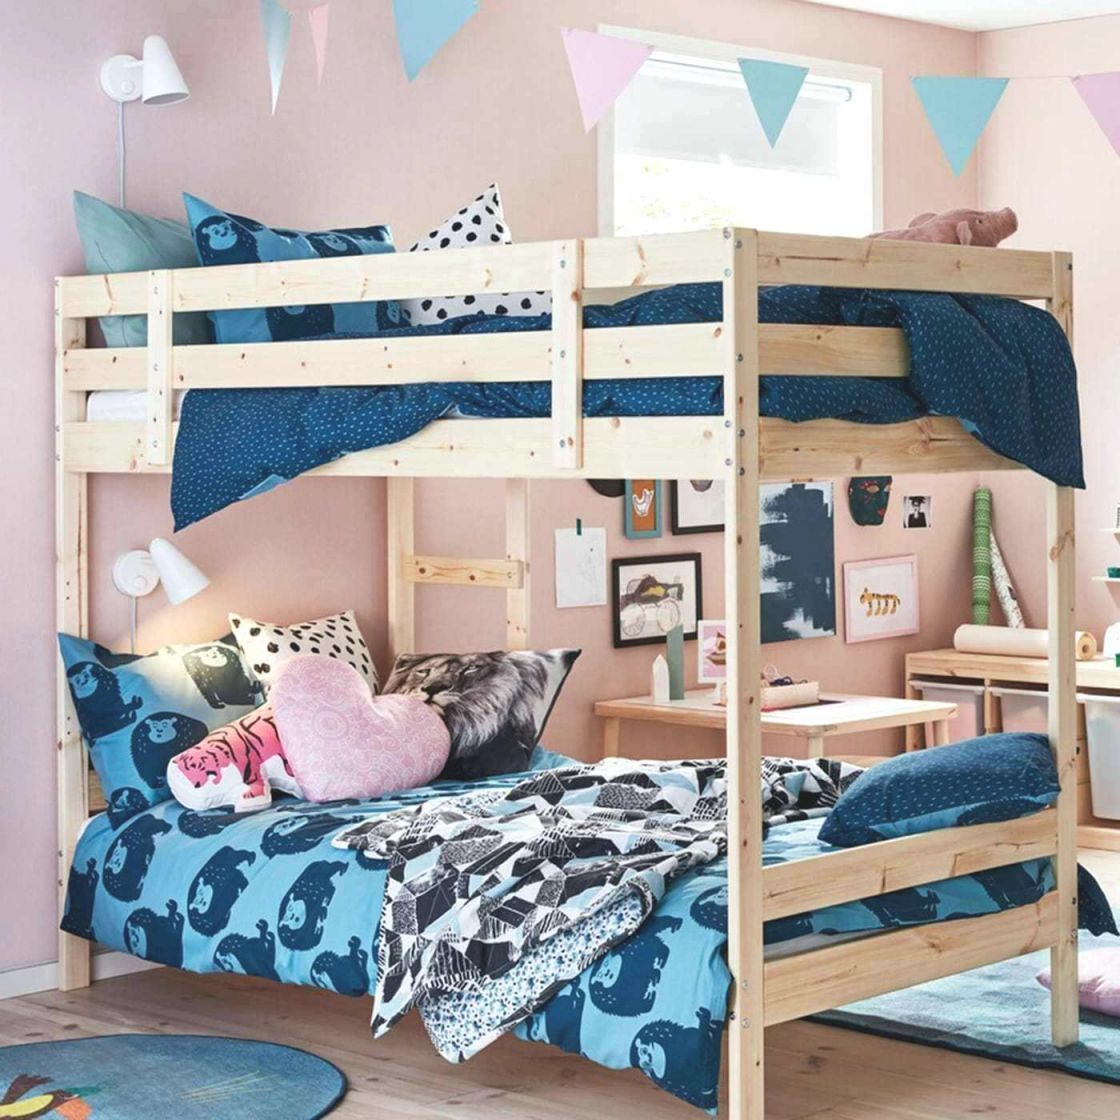 drop dead gorgeous childrens furniture bedroom cheap uk on Cheap Childrens Bedroom Furniture Sets id=81930